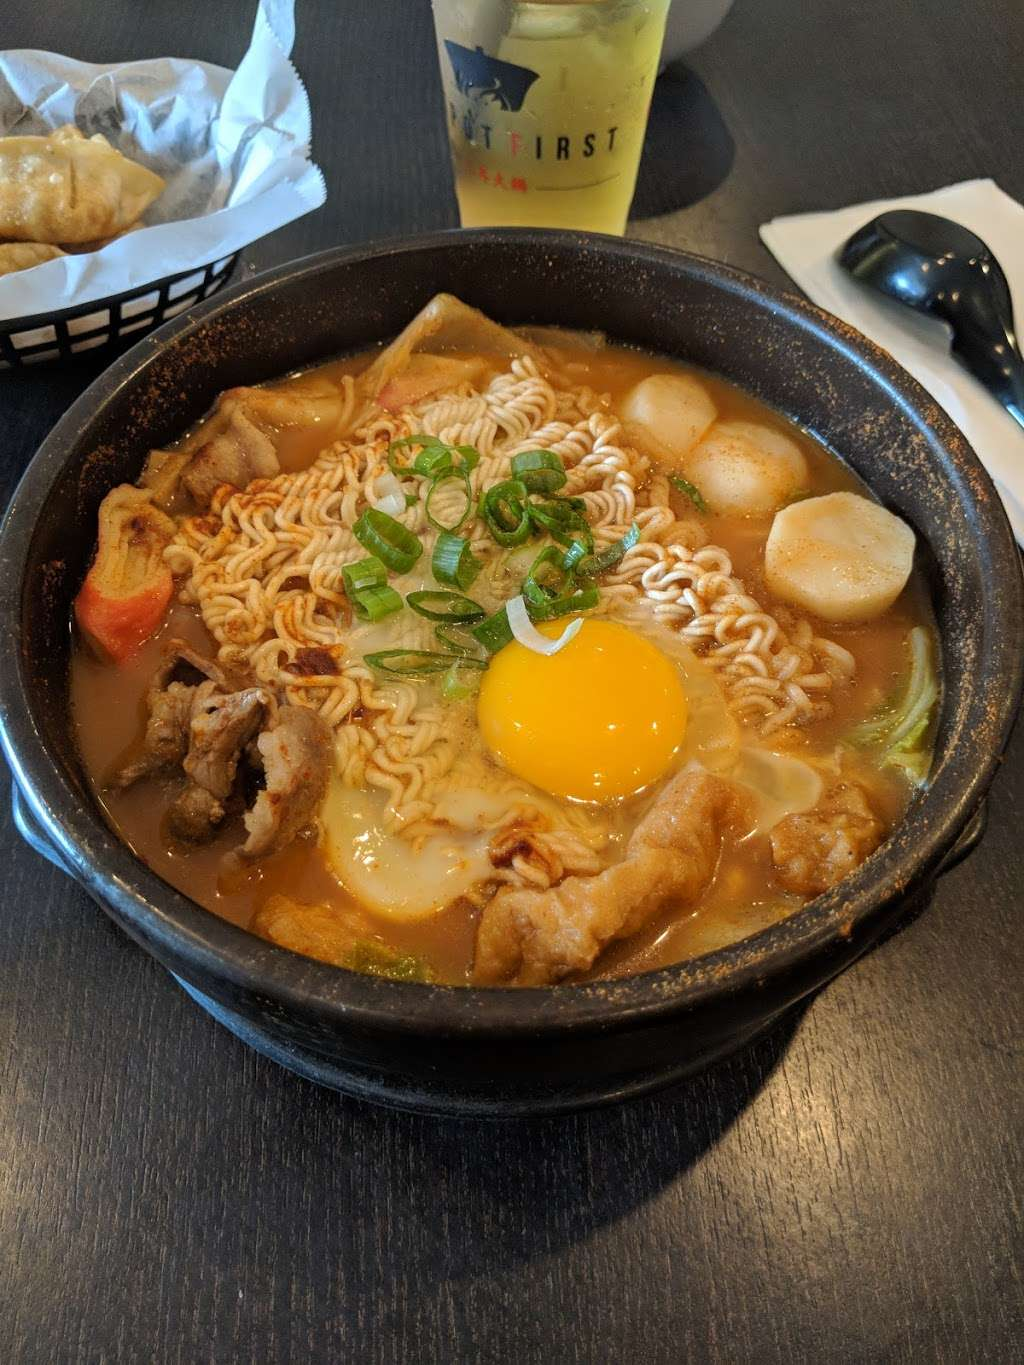 Hotpot First - restaurant  | Photo 8 of 10 | Address: 1149 Lawrence Expy, Sunnyvale, CA 94089, USA | Phone: (408) 734-8898